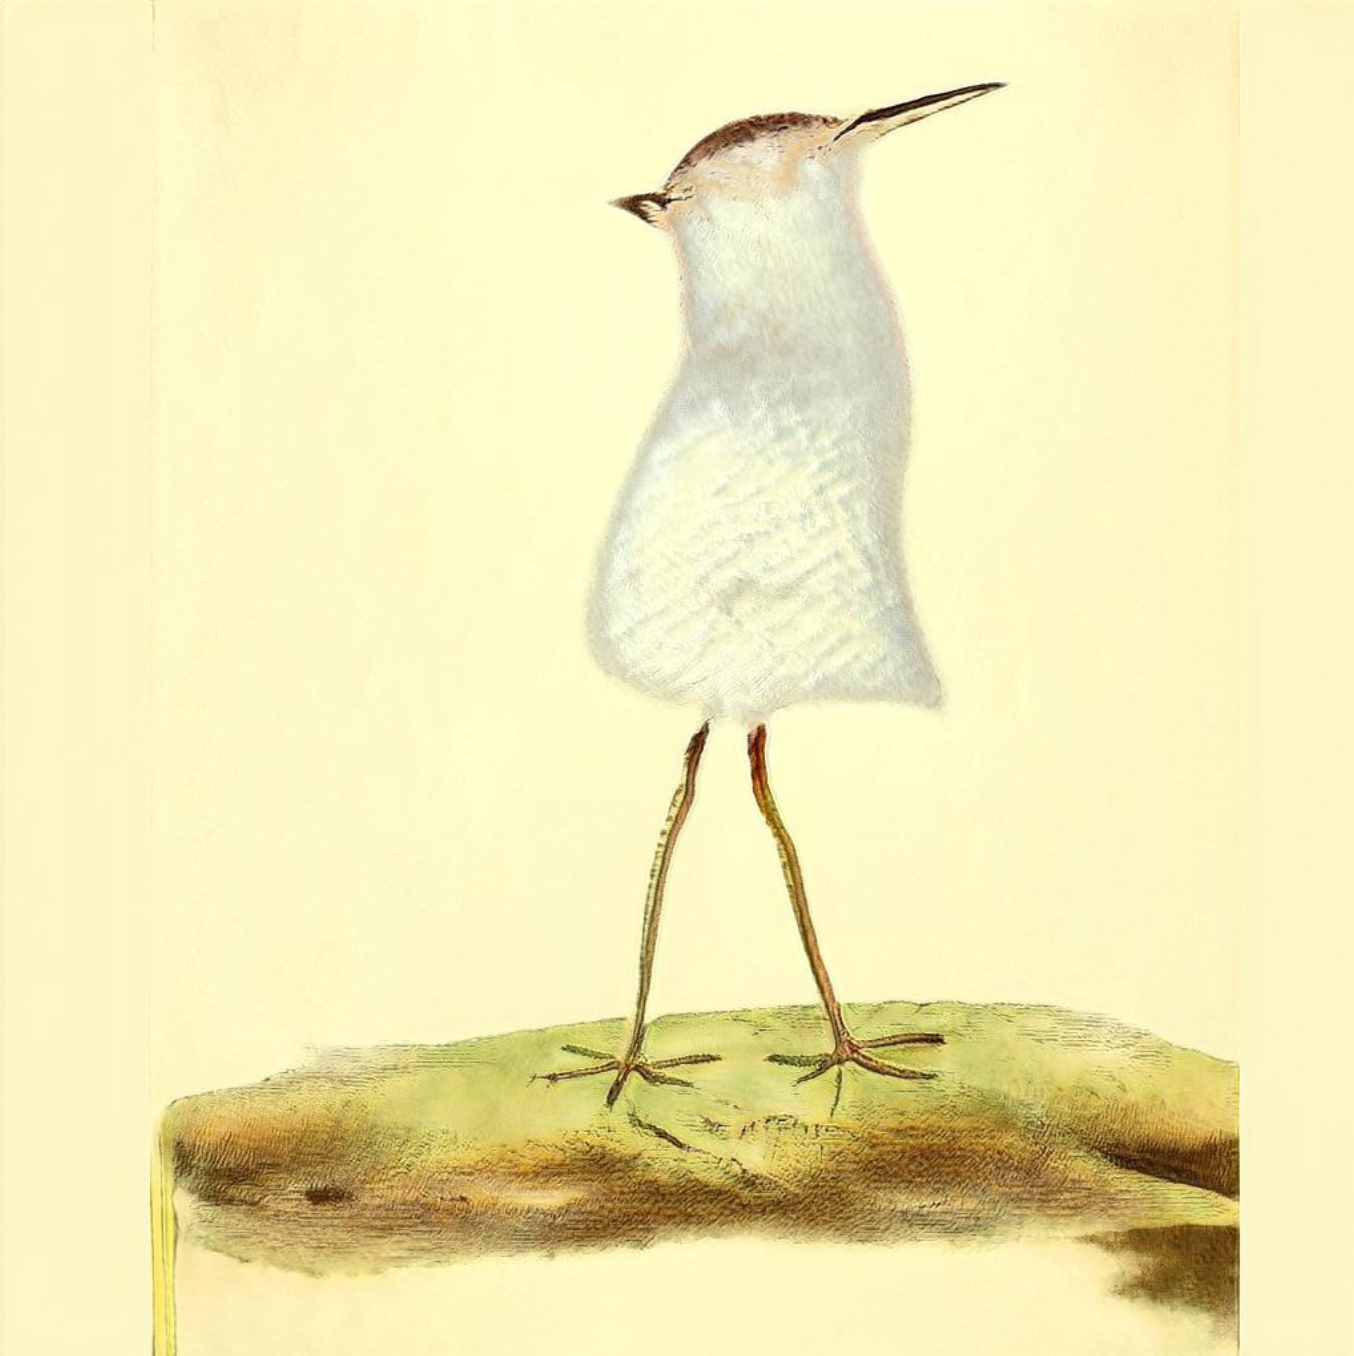 A single screenshot of a bird image in which the bird has two legs which look real but the body is tubular and upright unlike any bird I've seen. It also has no eyes and one beak on one side of its head and another beak on the other side.